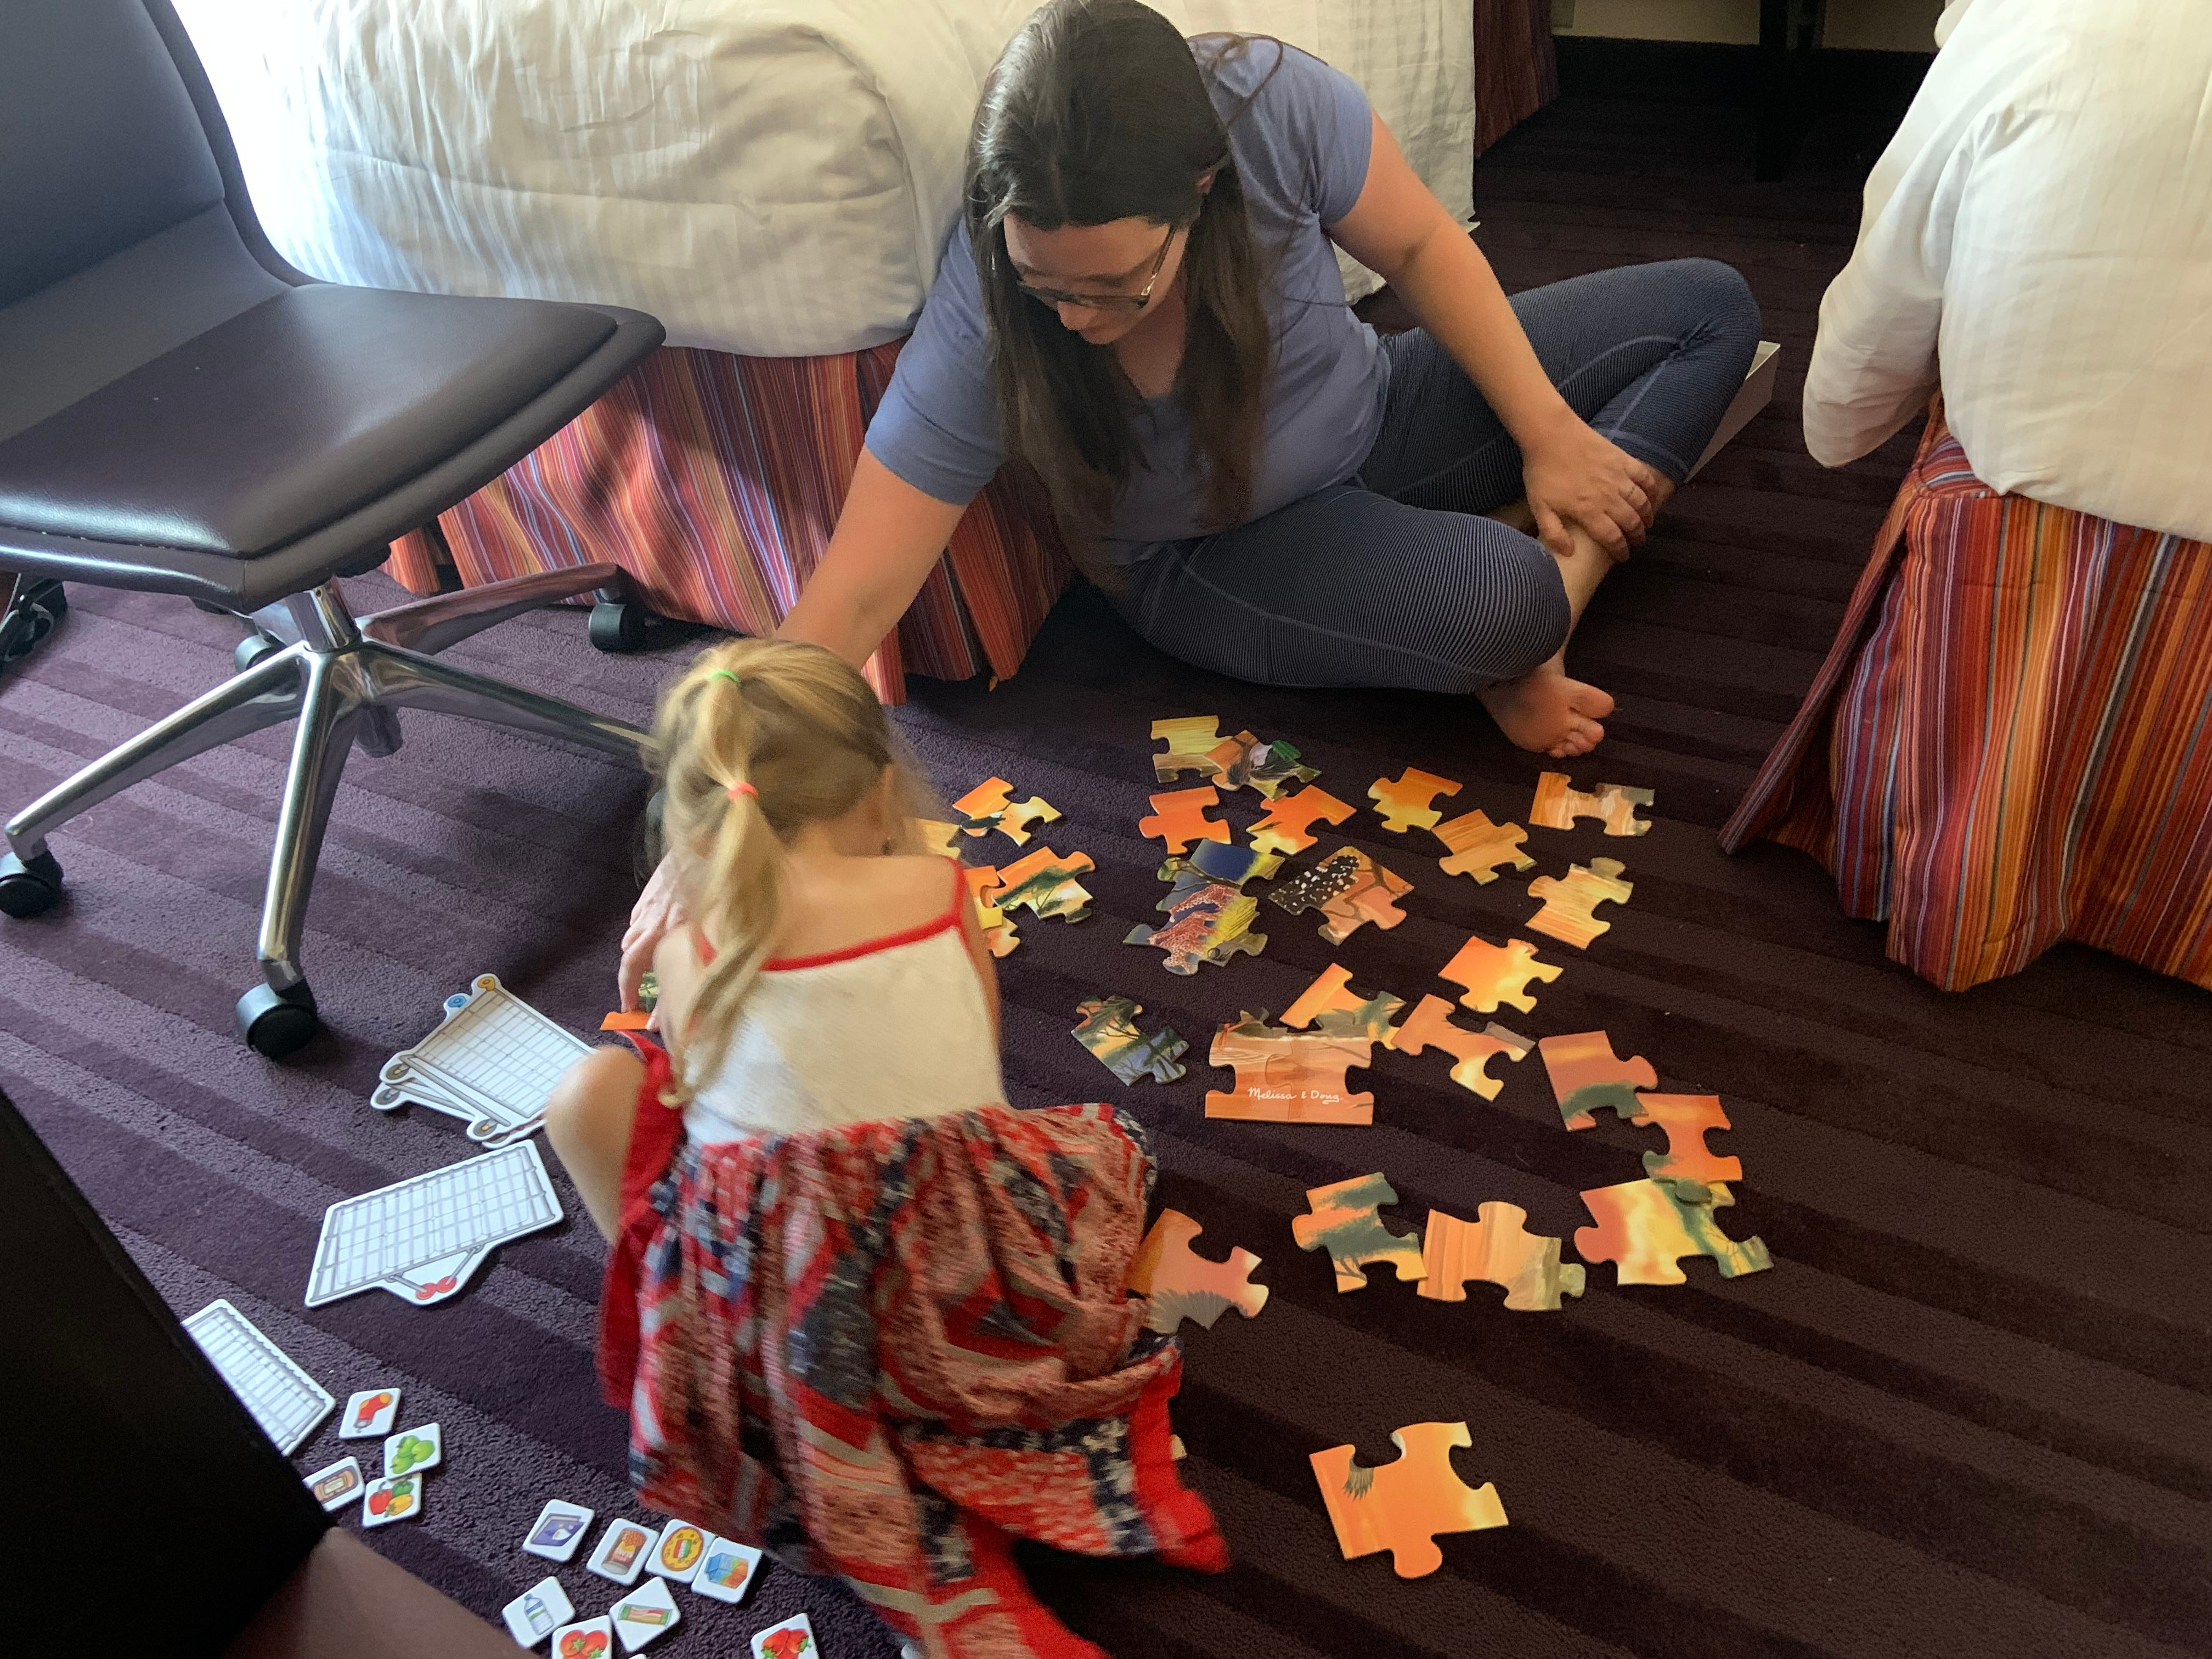 State Rep. Erin Zwiener, D-Driftwood, plays with her daughter, Lark, in their Washington hotel room on Wednesday, July 14, 2021.